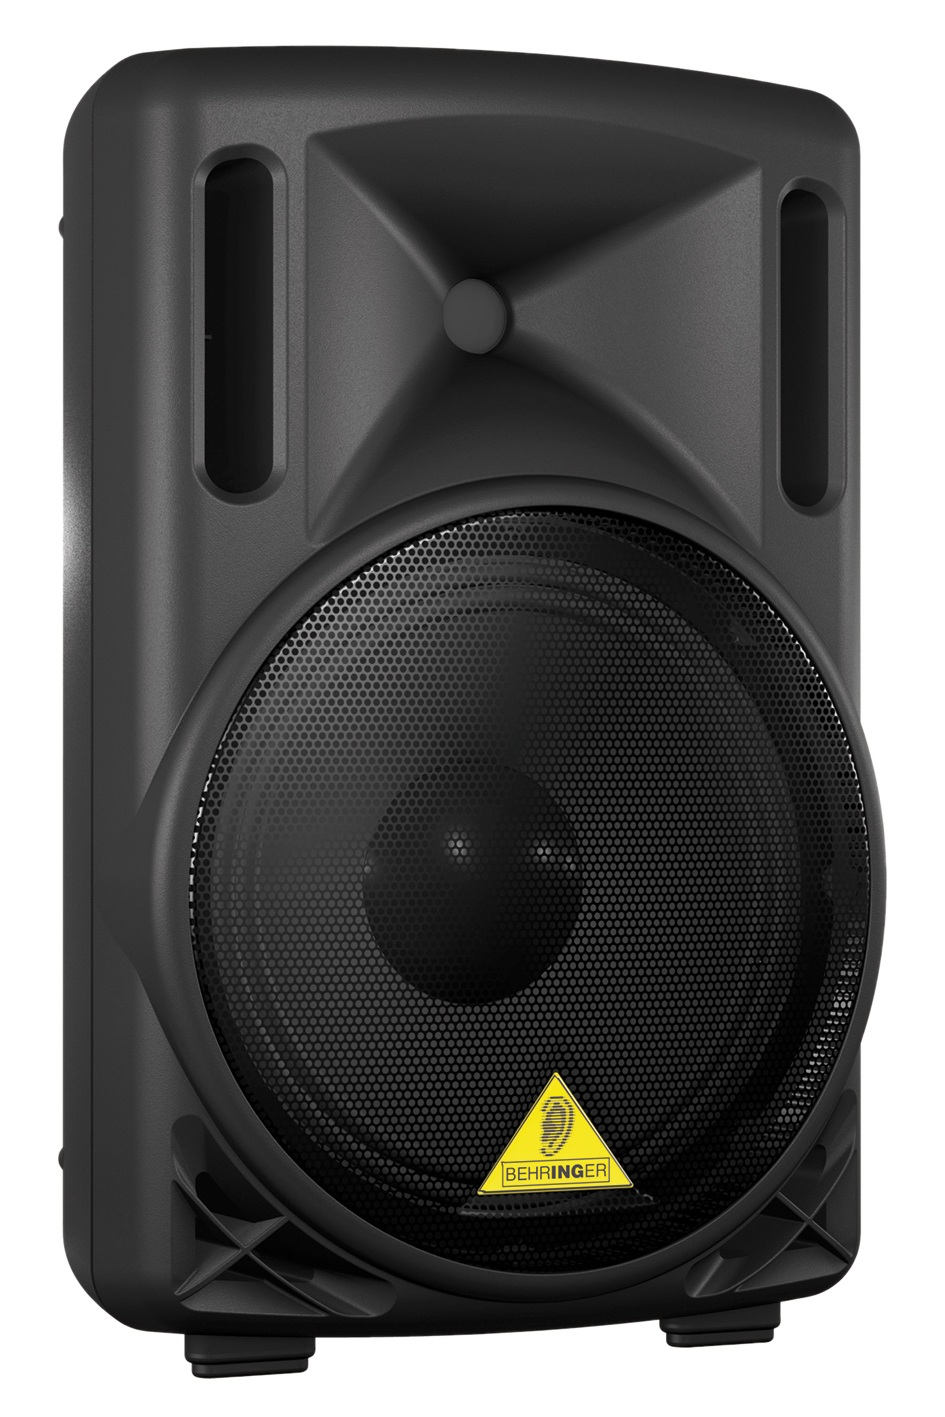 Behringer's Eurolive series uses Class D amplifiers - great energy efficiency without the weight